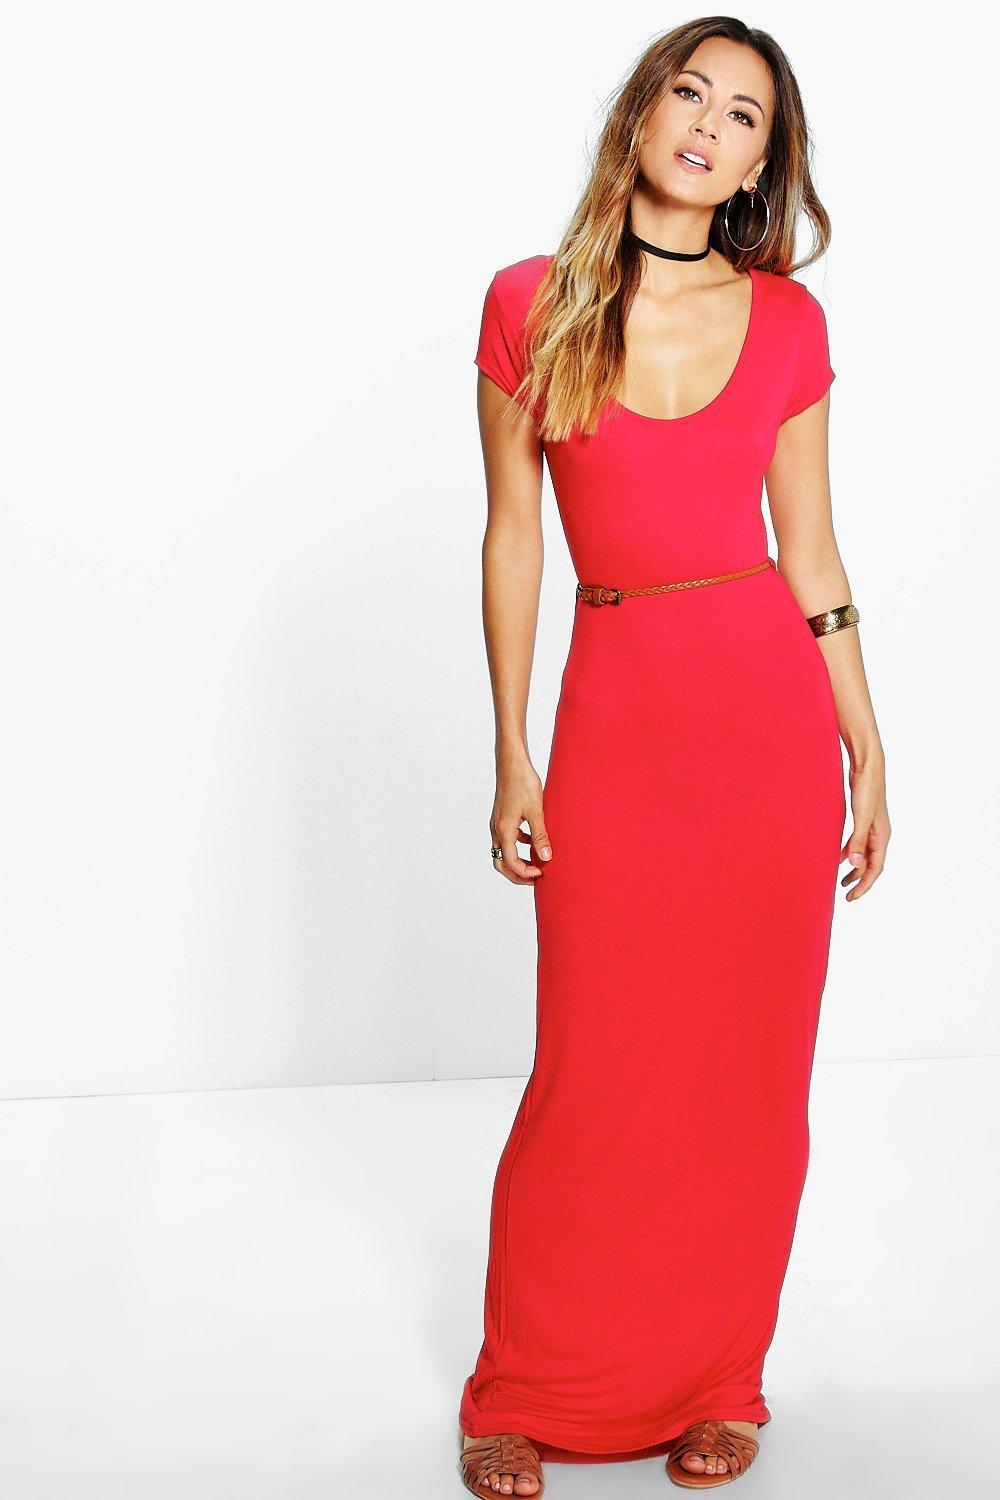 Cap Sleeve Belted Maxi Dress Red - fit: tight; pattern: plain; style: maxi dress; waist detail: belted waist/tie at waist/drawstring; predominant colour: true red; occasions: evening; length: floor length; neckline: scoop; fibres: polyester/polyamide - stretch; sleeve length: short sleeve; sleeve style: standard; texture group: jersey - clingy; pattern type: fabric; season: s/s 2016; wardrobe: event